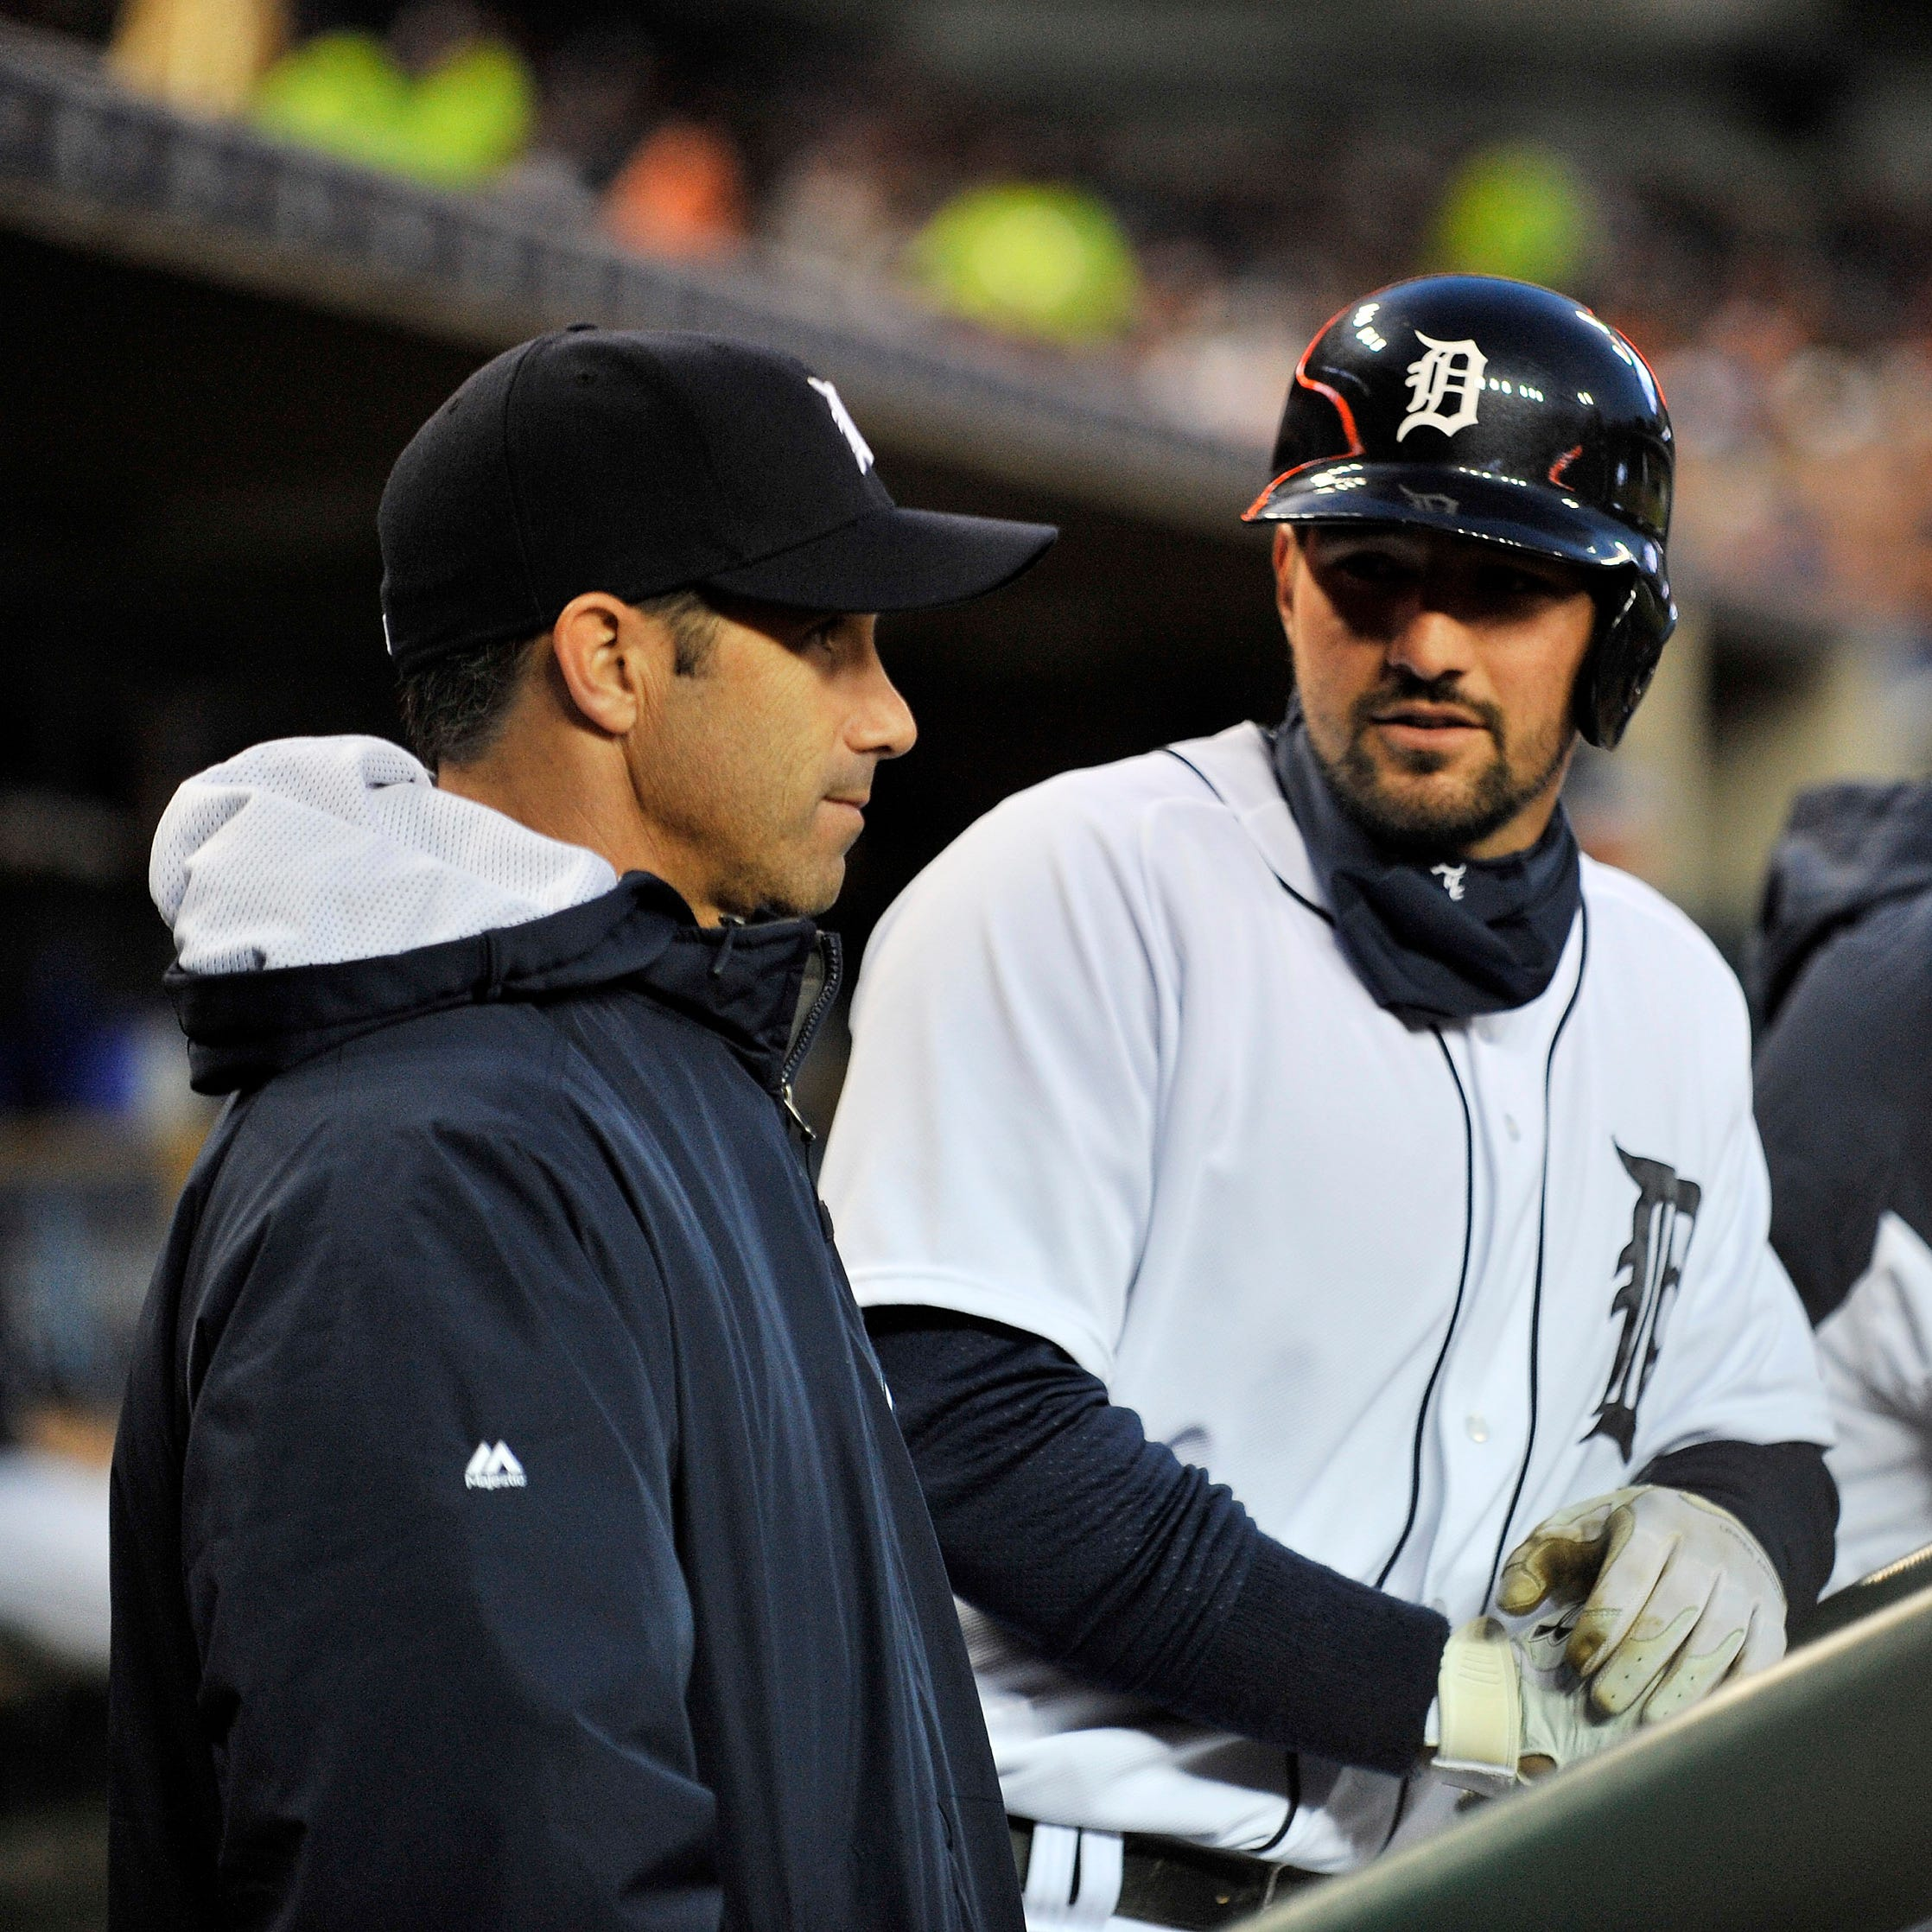 Tigers' Nick Castellanos on Brad Ausmus: 'Sometimes he doesn't communicate his feelings very well'